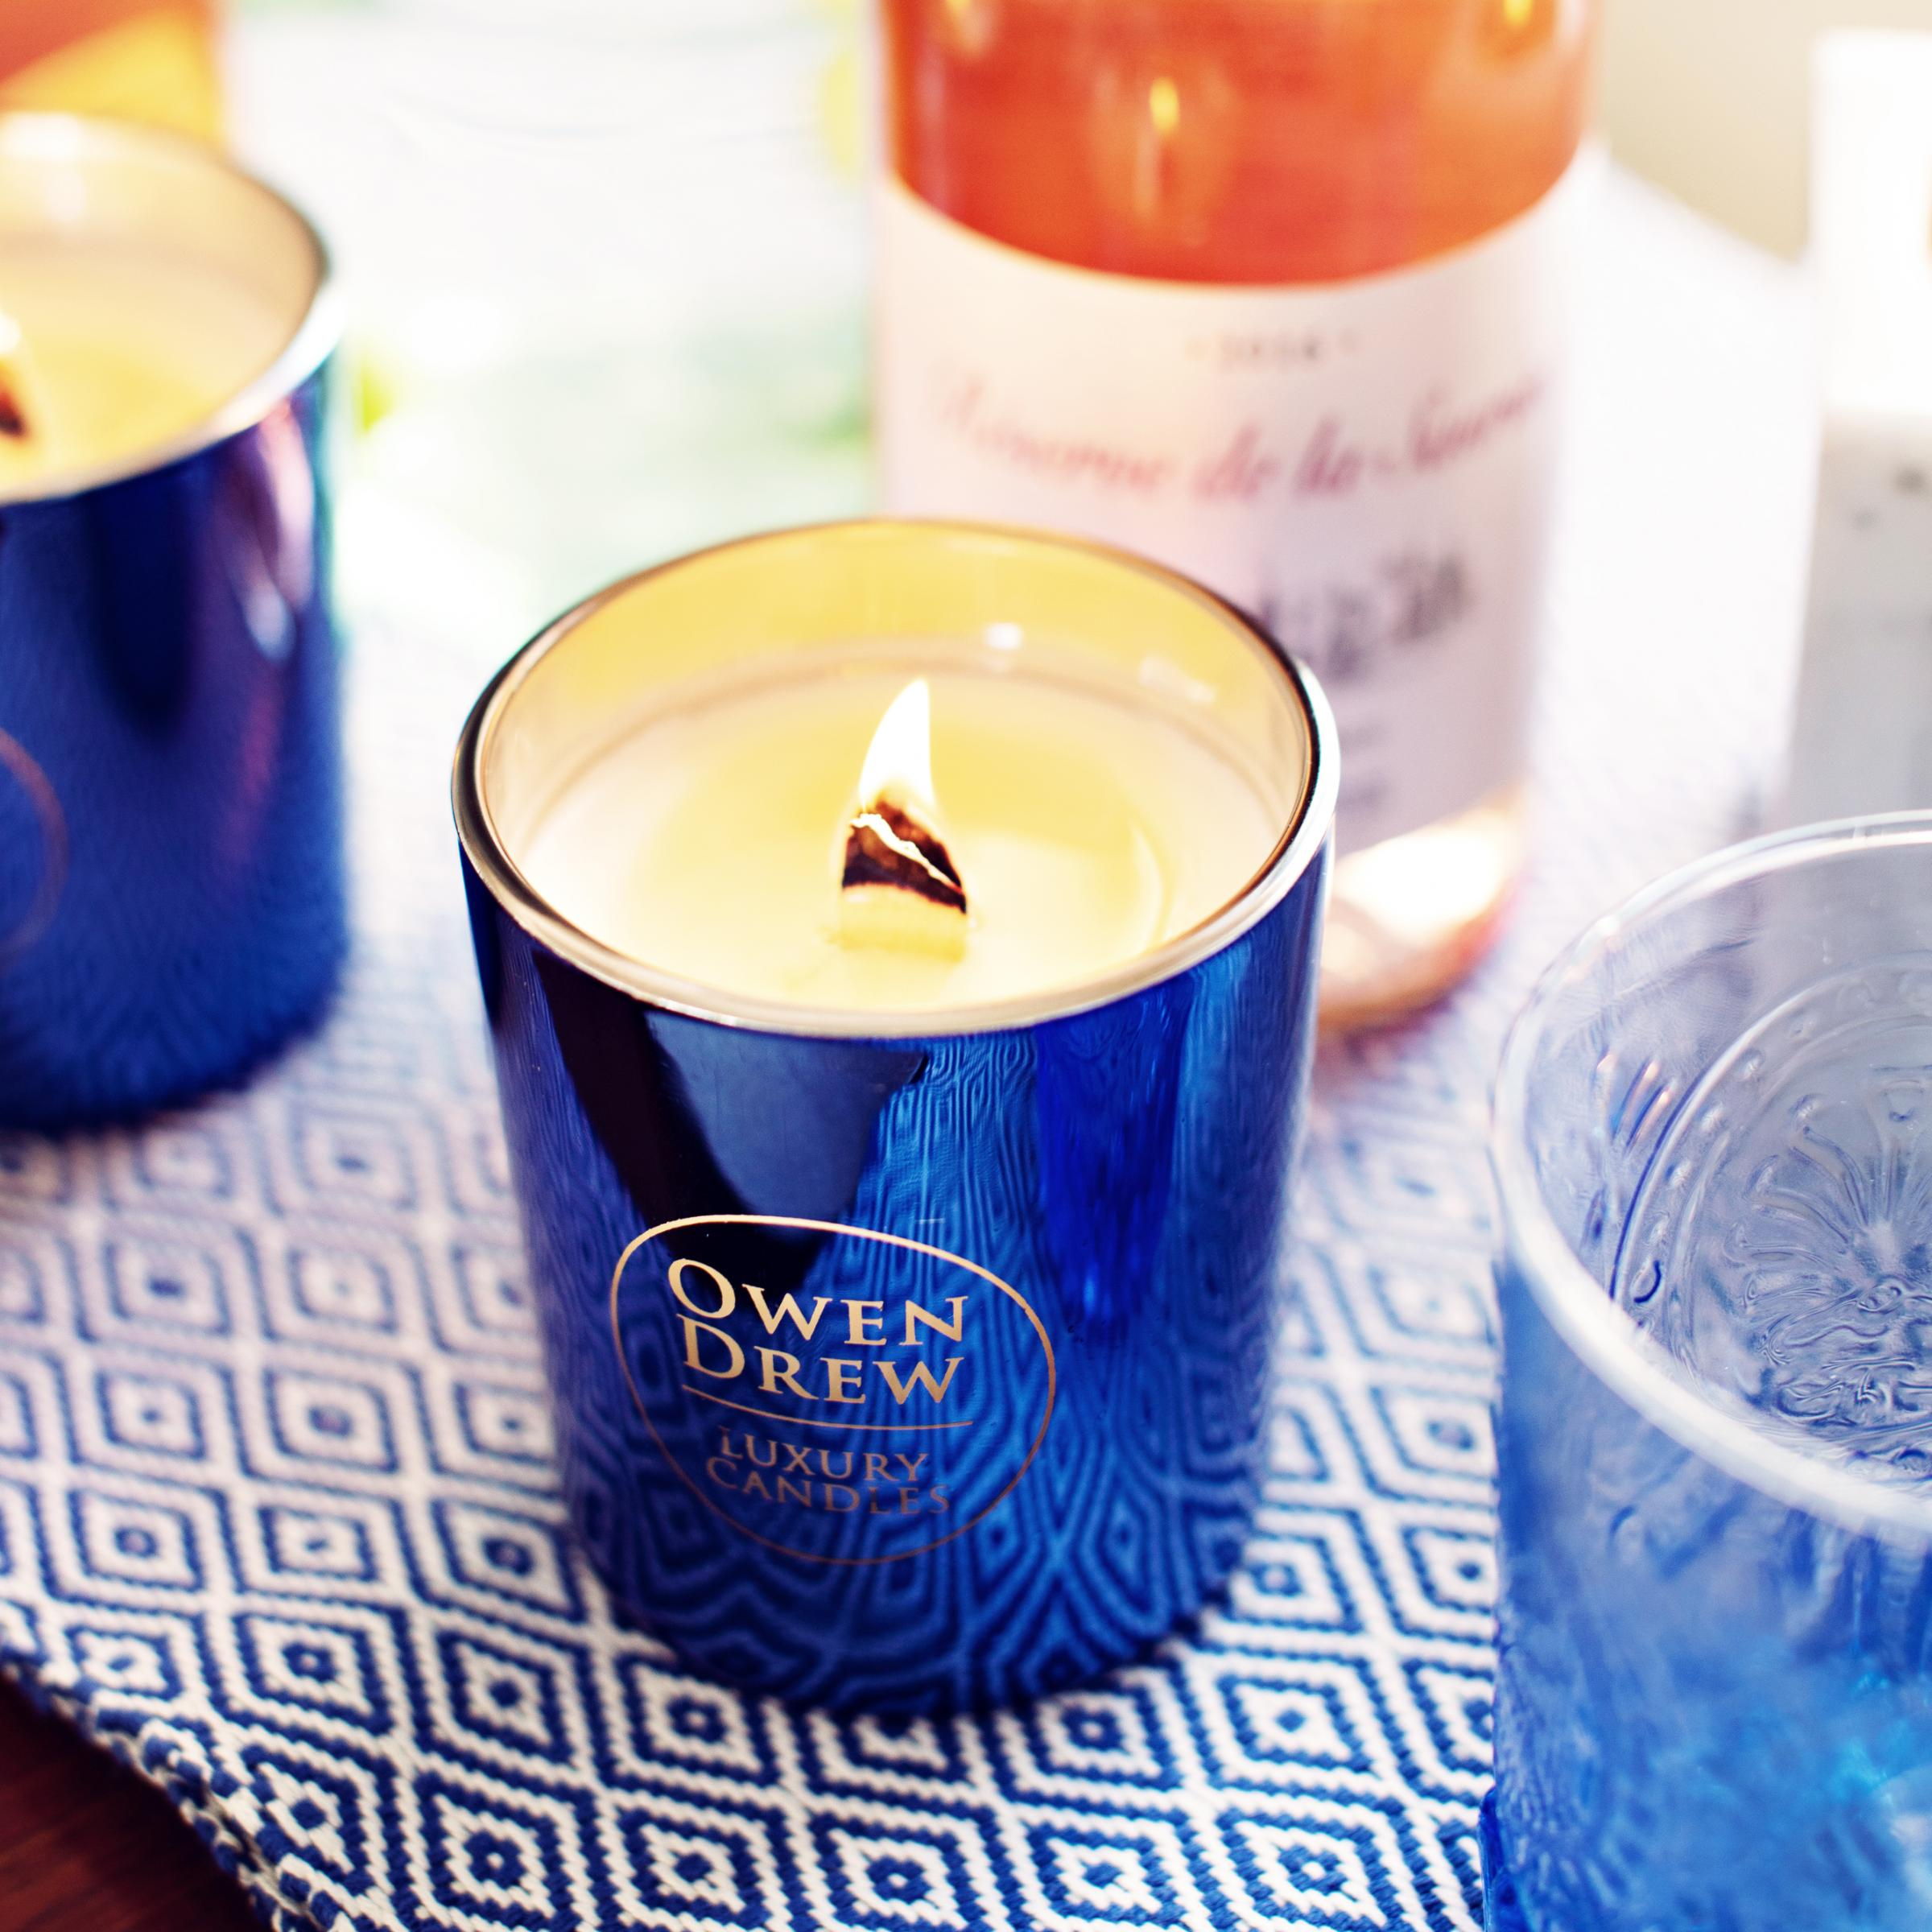 Owen Drew's 'Amalfi' candle ranked higher than Tom Ford and Suzanne Kaufmann